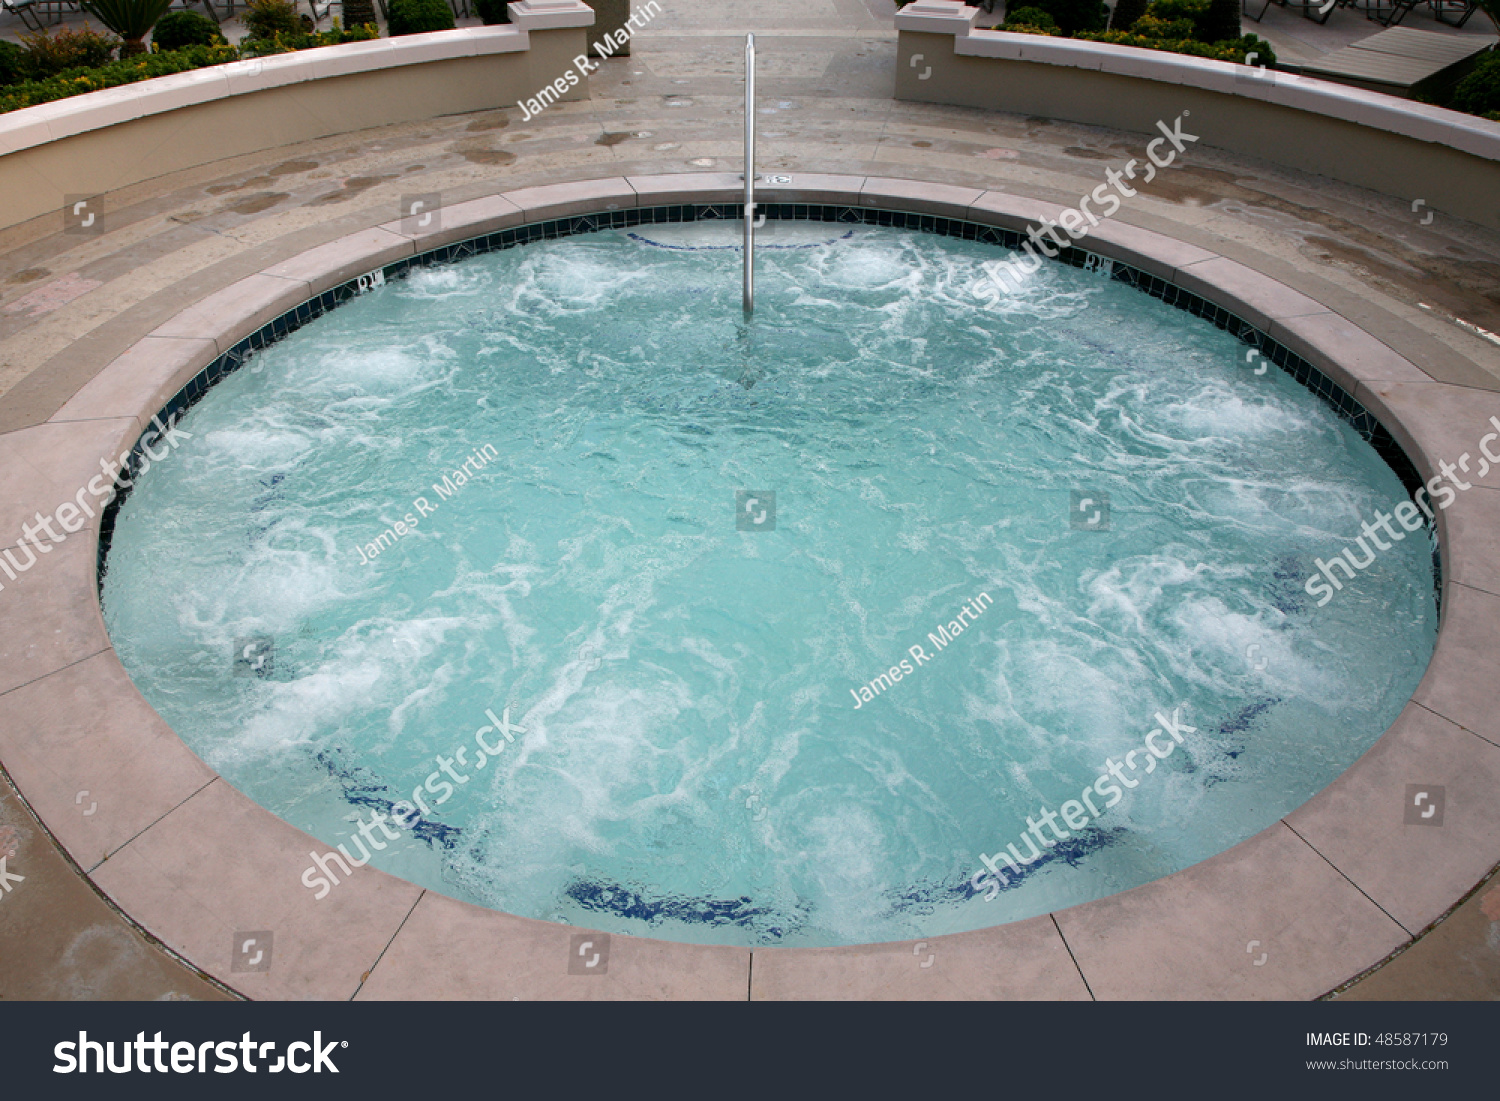 Royalty-free Concrete spa or whirlpool #48587179 Stock Photo ...